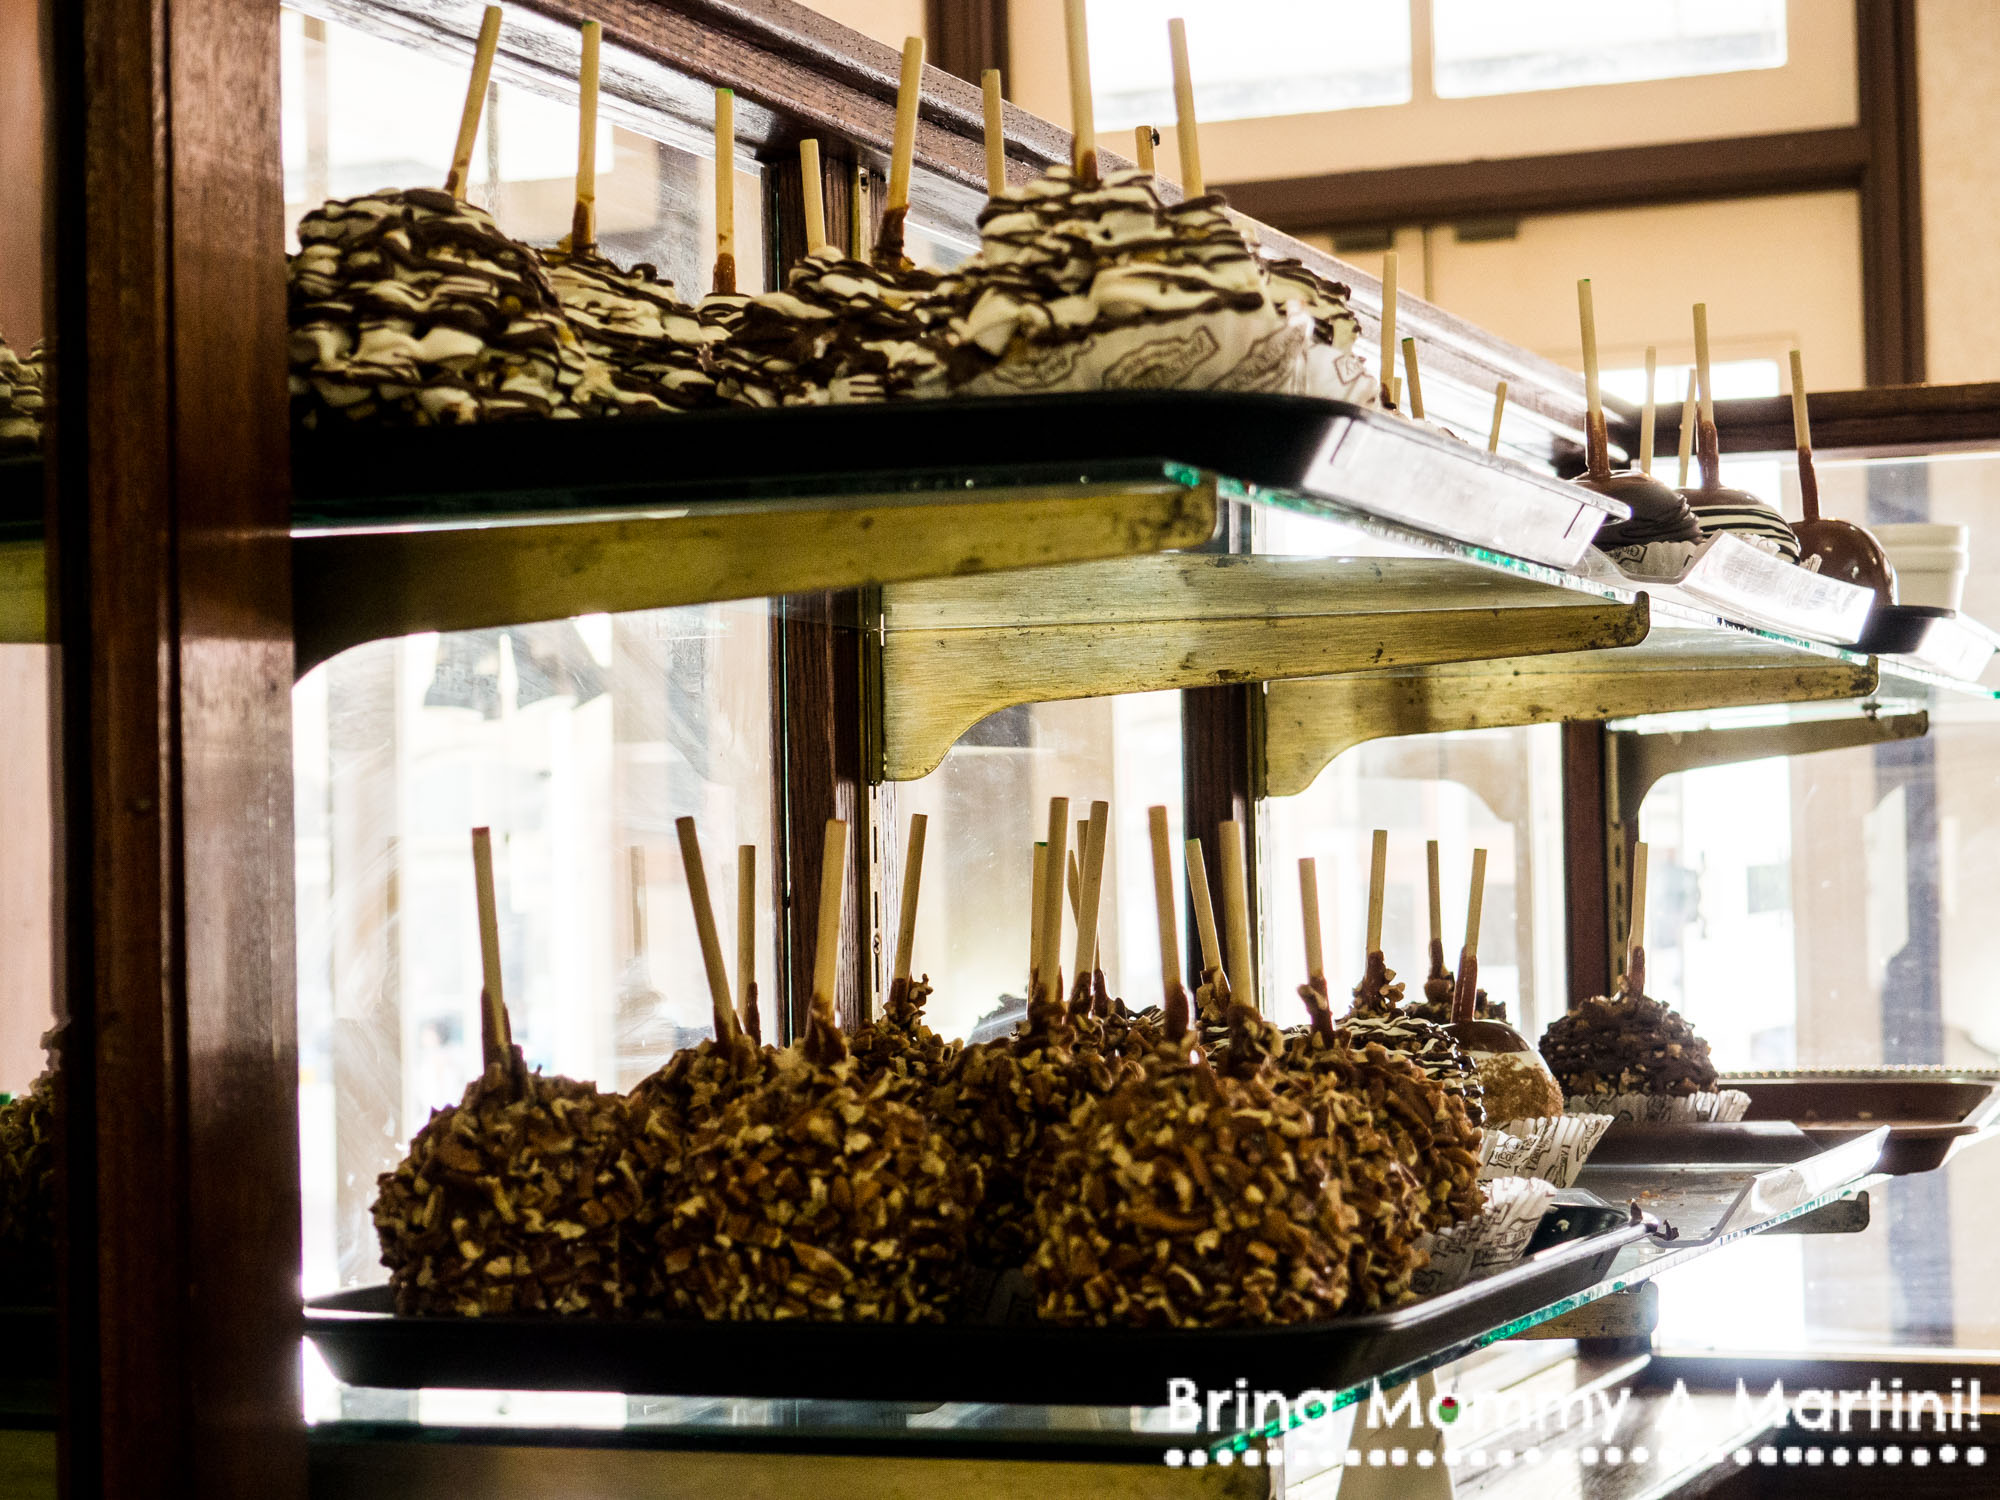 Candied apples at The Chocolate Factory